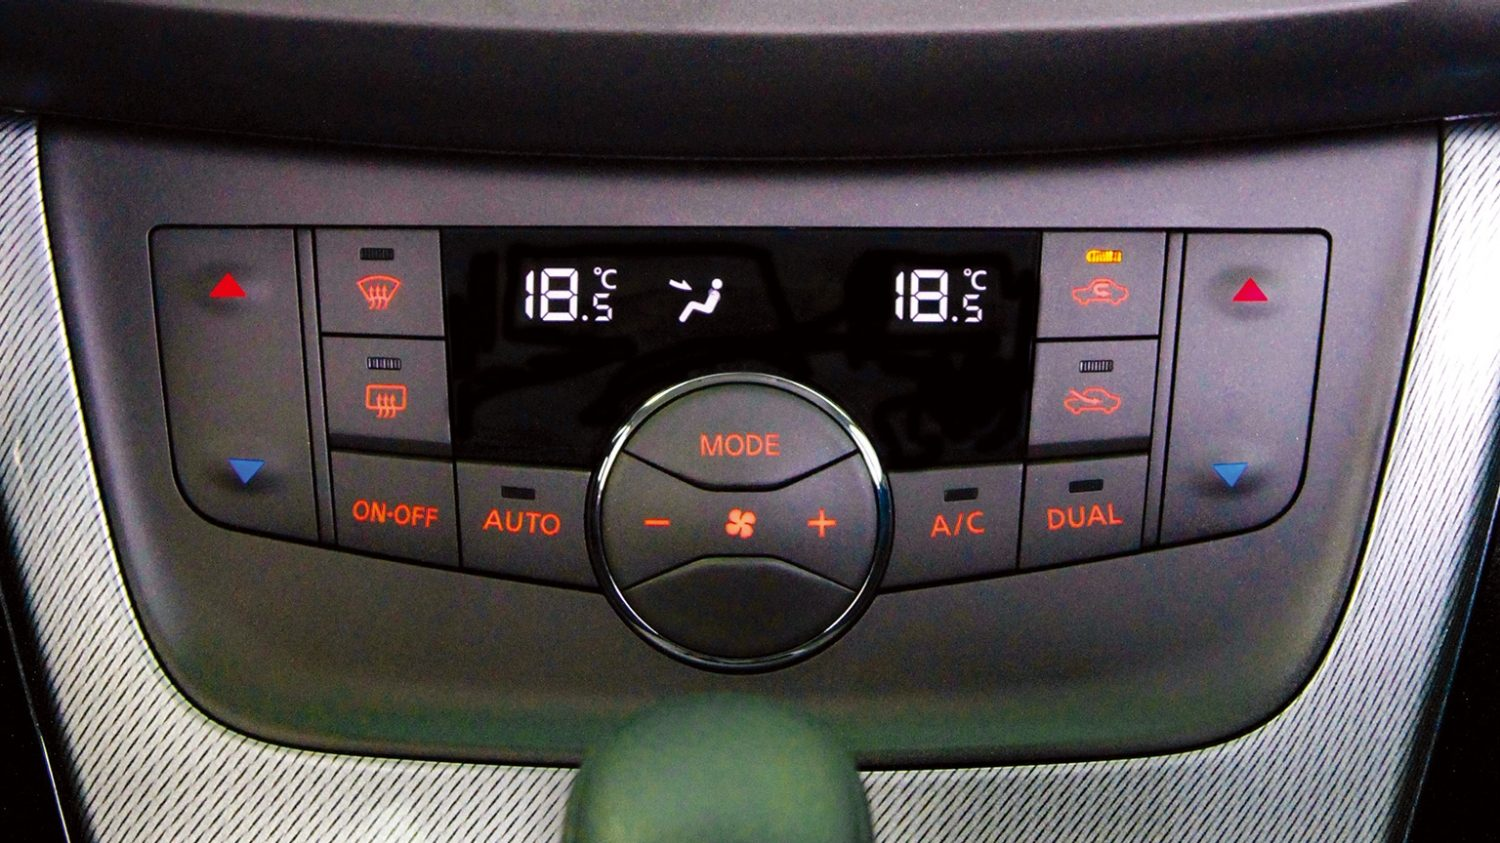 Dual Zone Climate Control Display